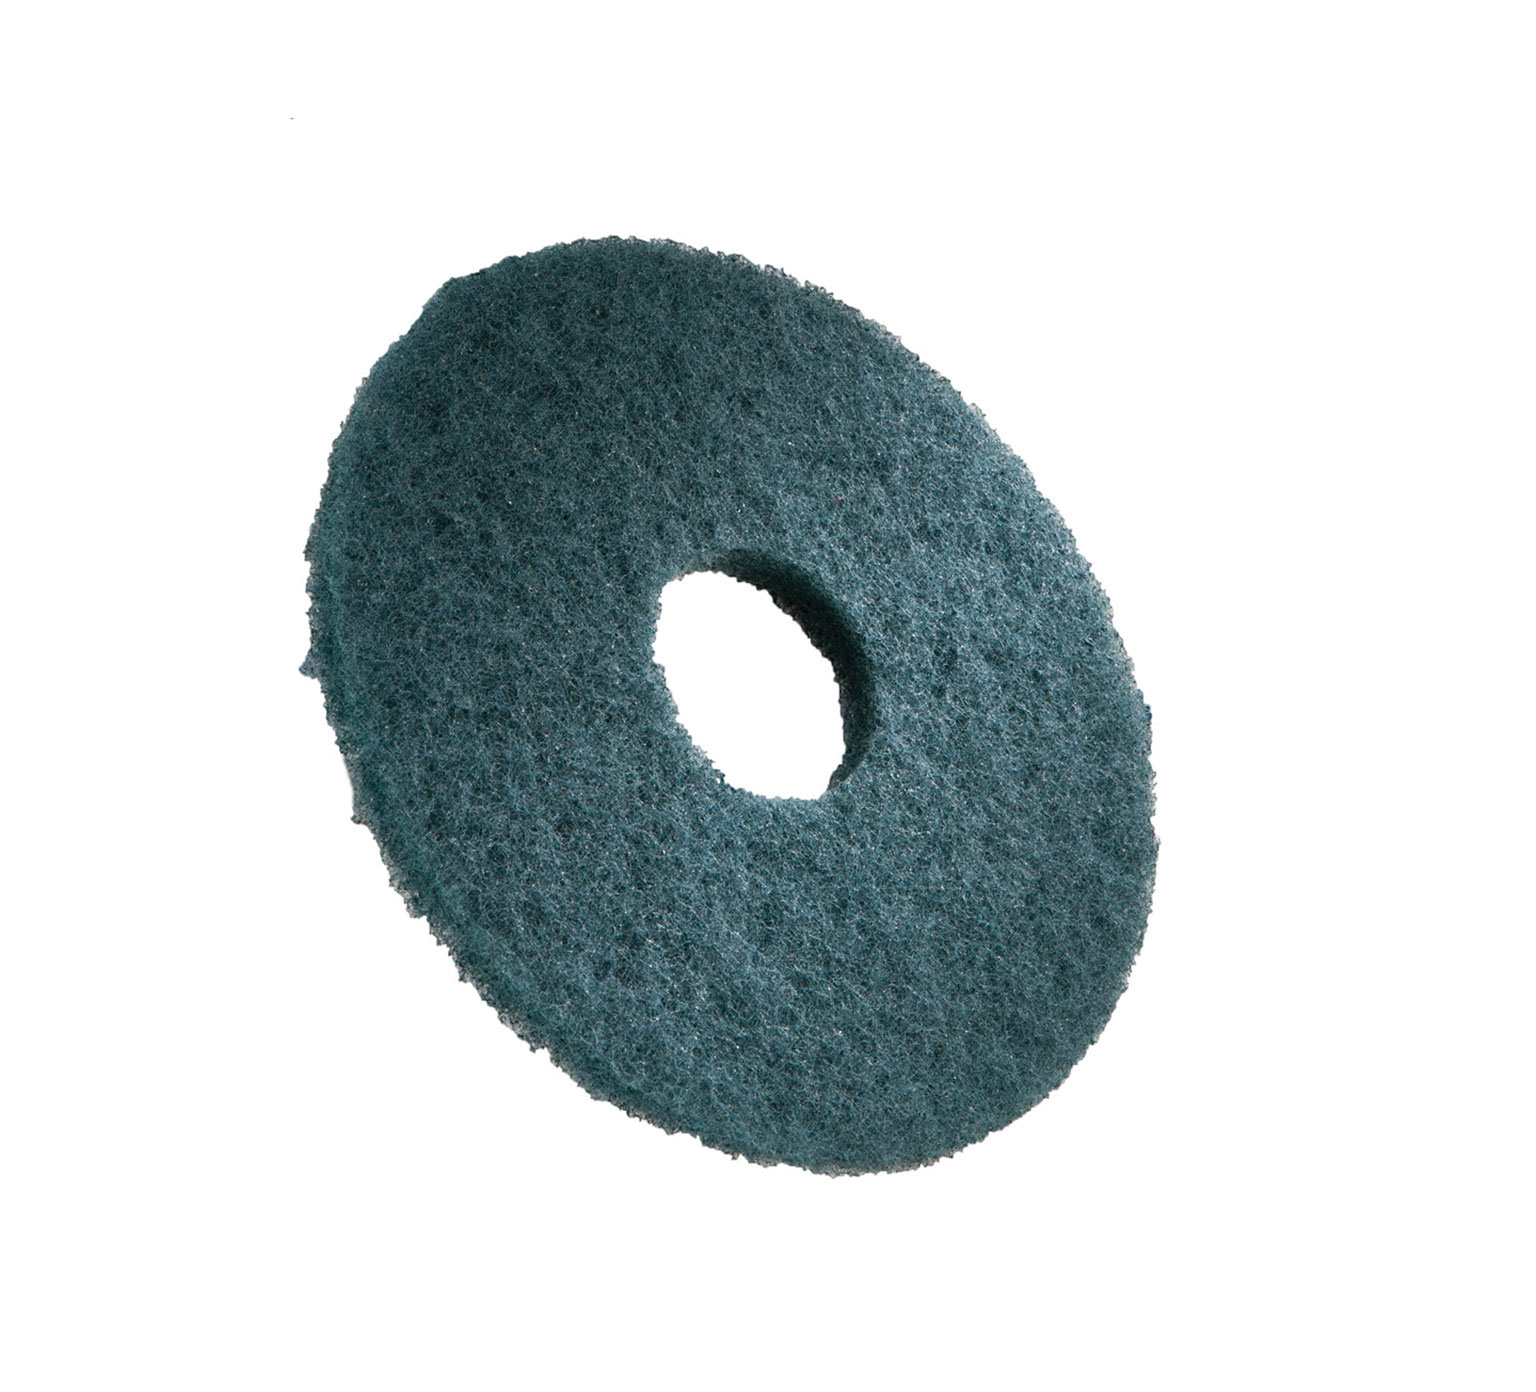 385942 3M Blue Scrubbing Pad – 12 in / 304.8 mm alt 1